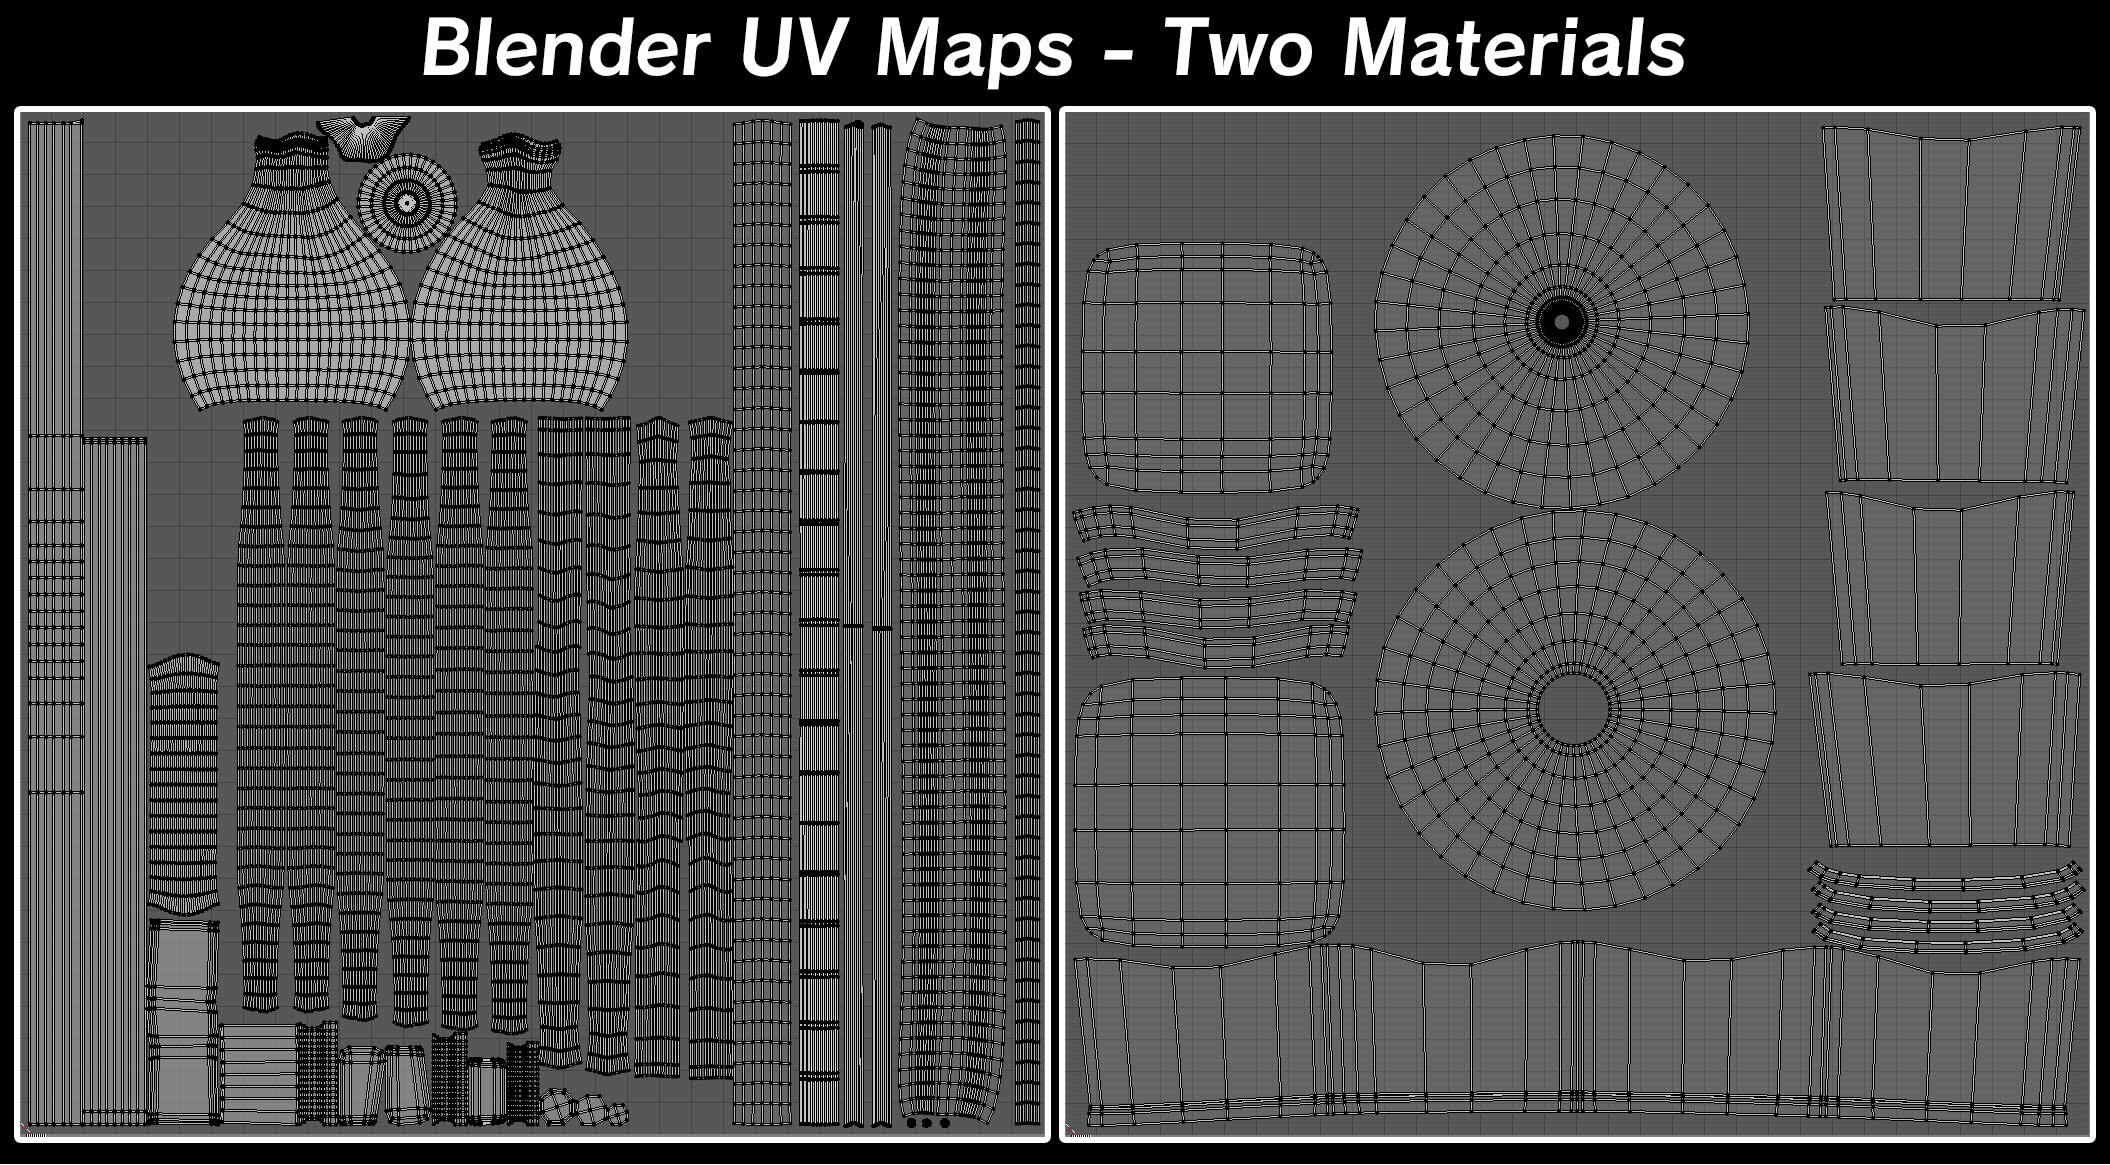 I made the decision to split the asset into two materials mainly to maximize space and to separate unique UV islands from overlapping ones. The first material on the left is 100% overlapping islands, and the right material is individual islands.